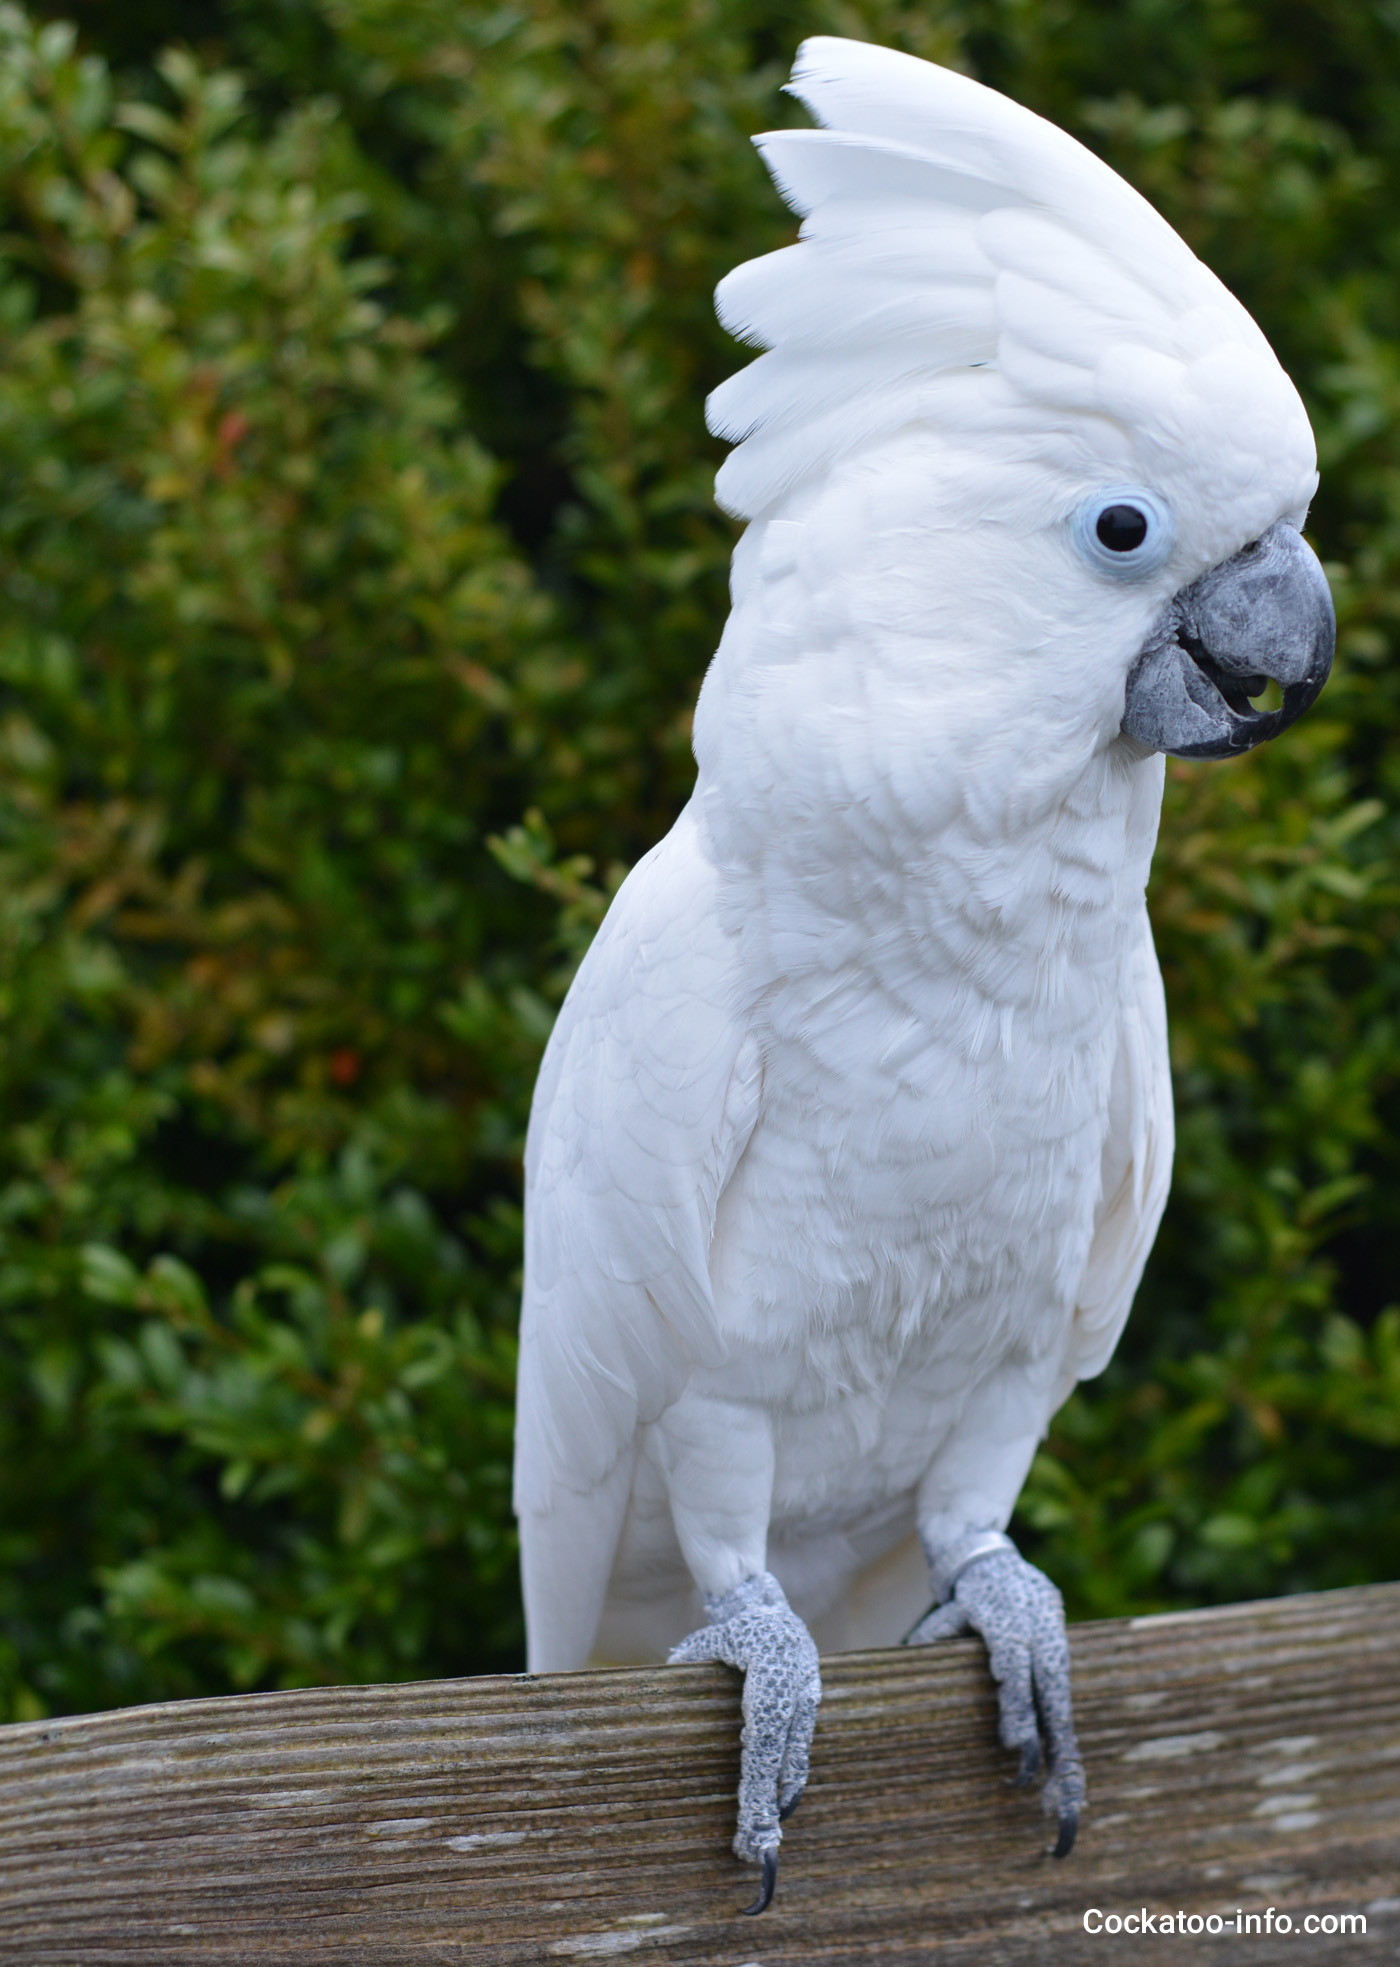 Specialized Wallpaper Hd Locations For Buying A Cockatoo Cockatoo Info Com